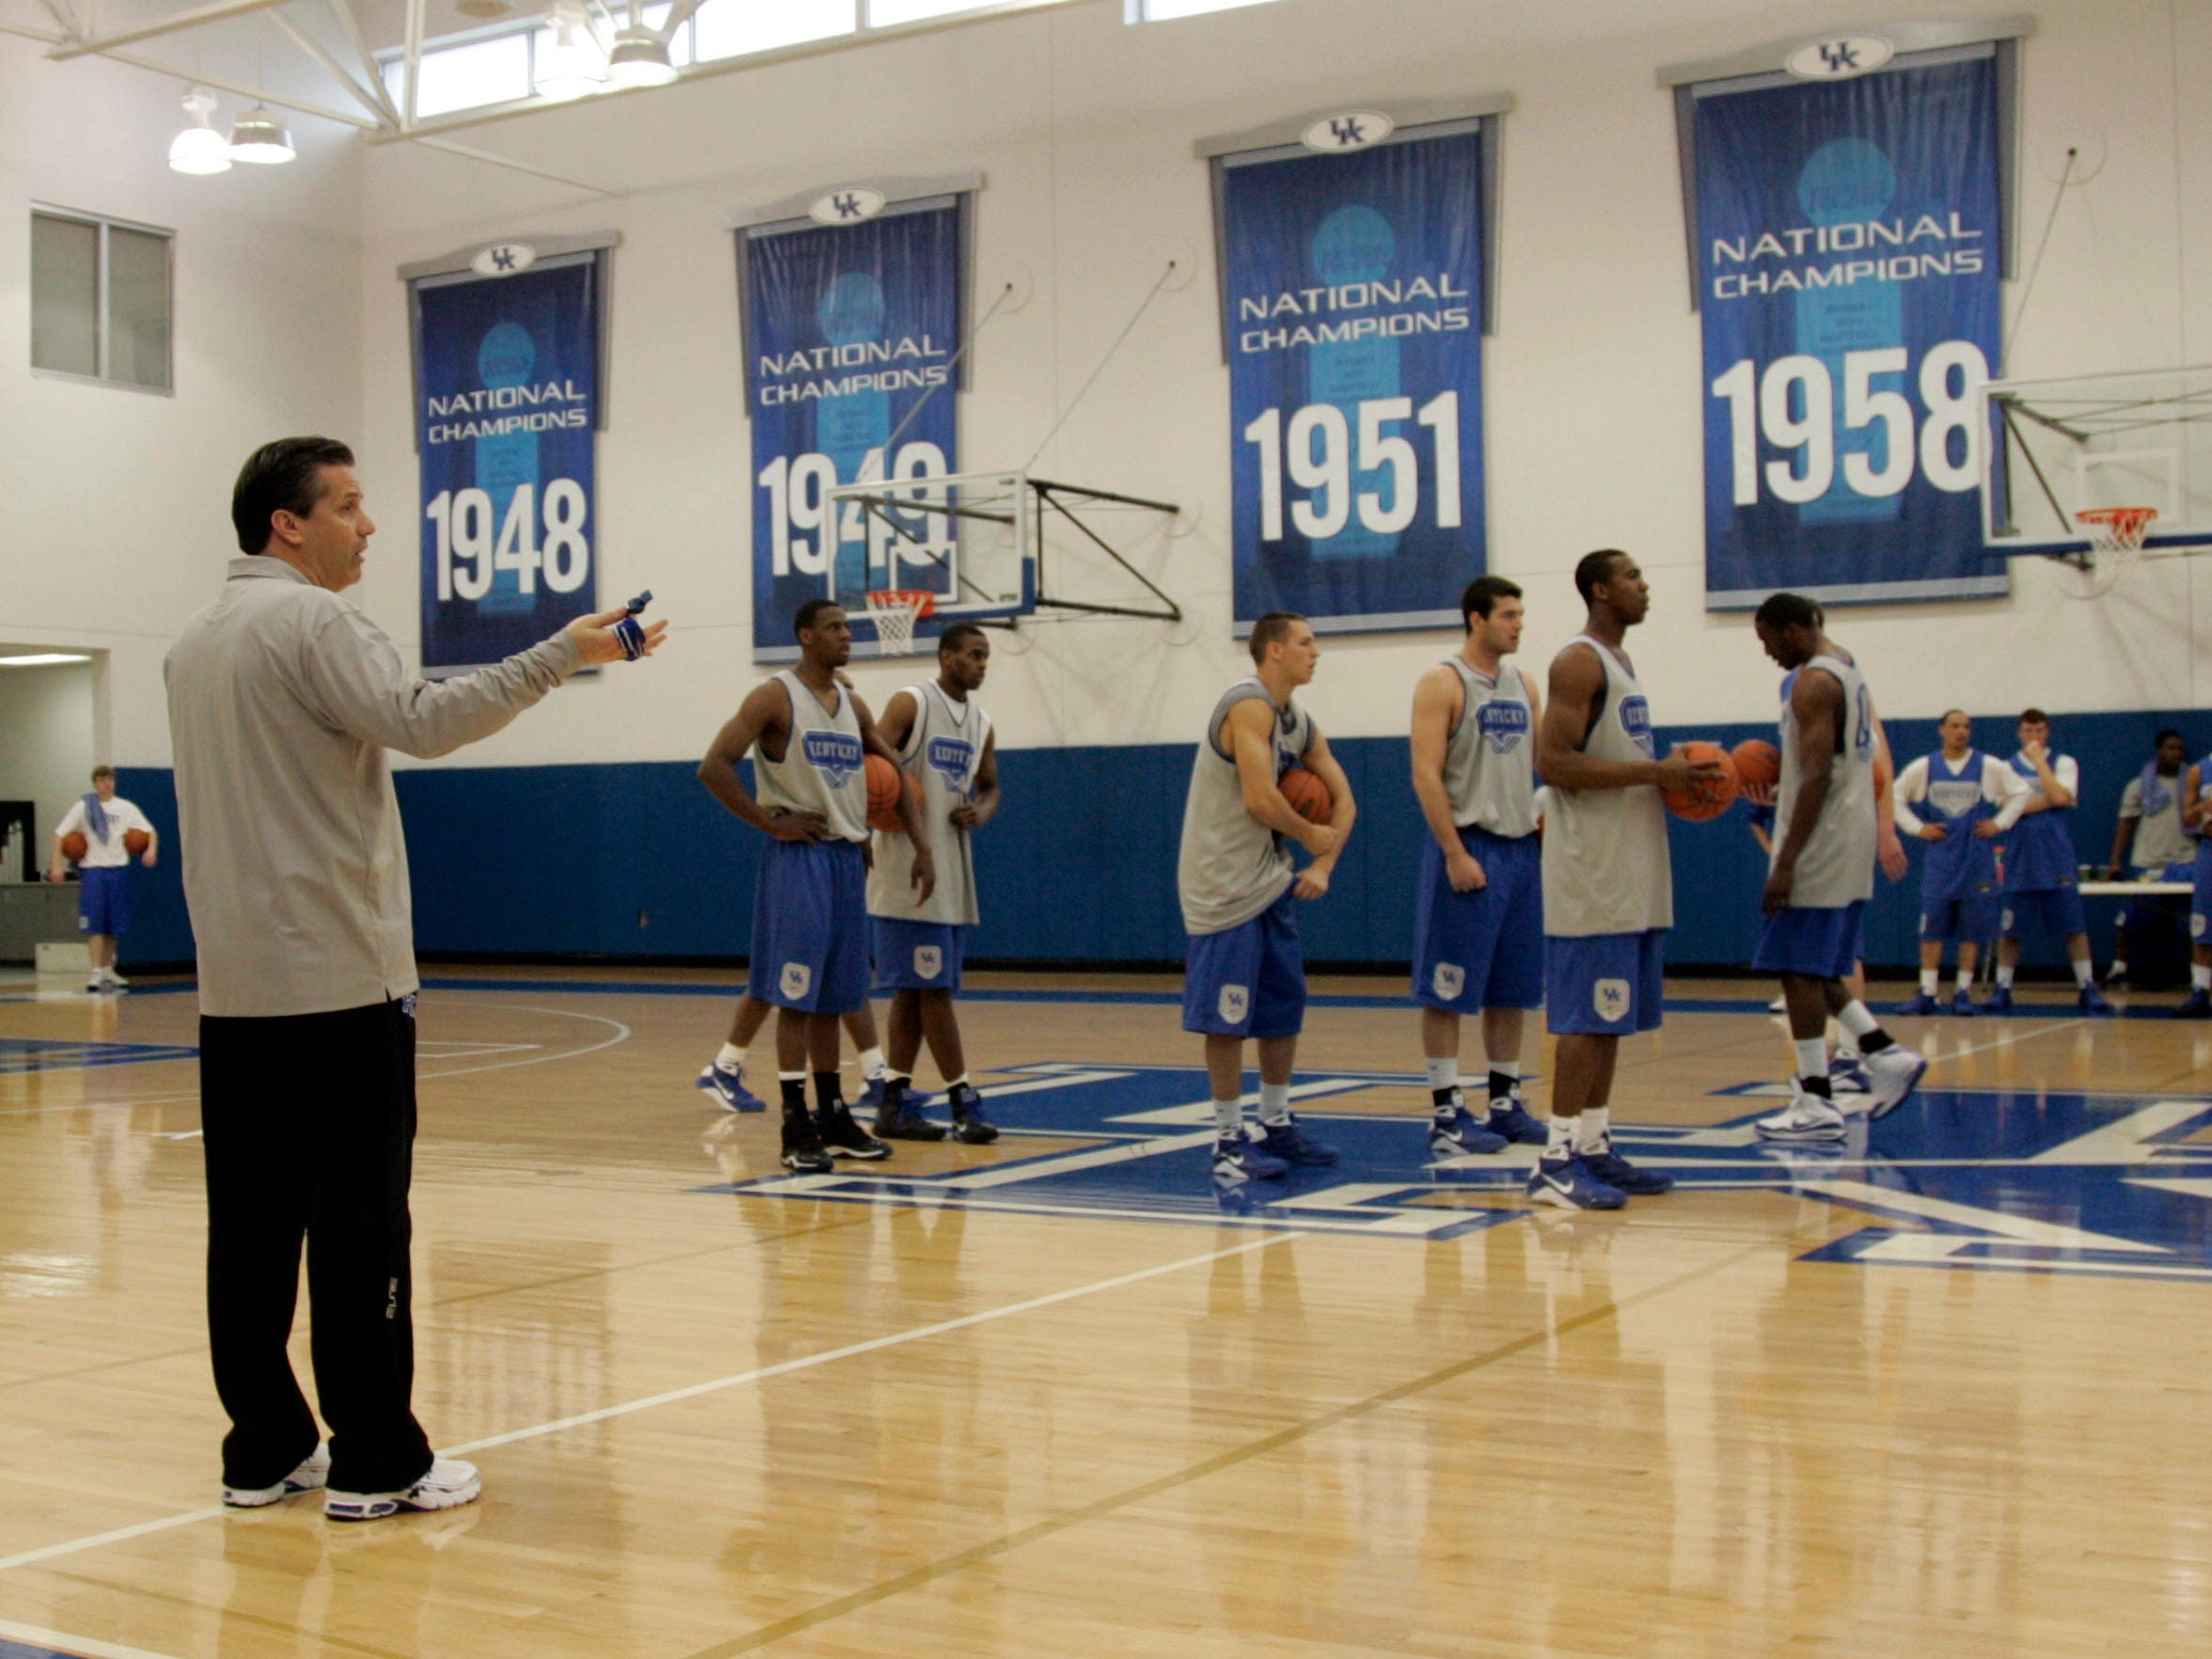 John Calipari conducts a practice shortly after taking over as Kentucky coach in 2009. He quickly recognized the need to infuse the roster with new players.